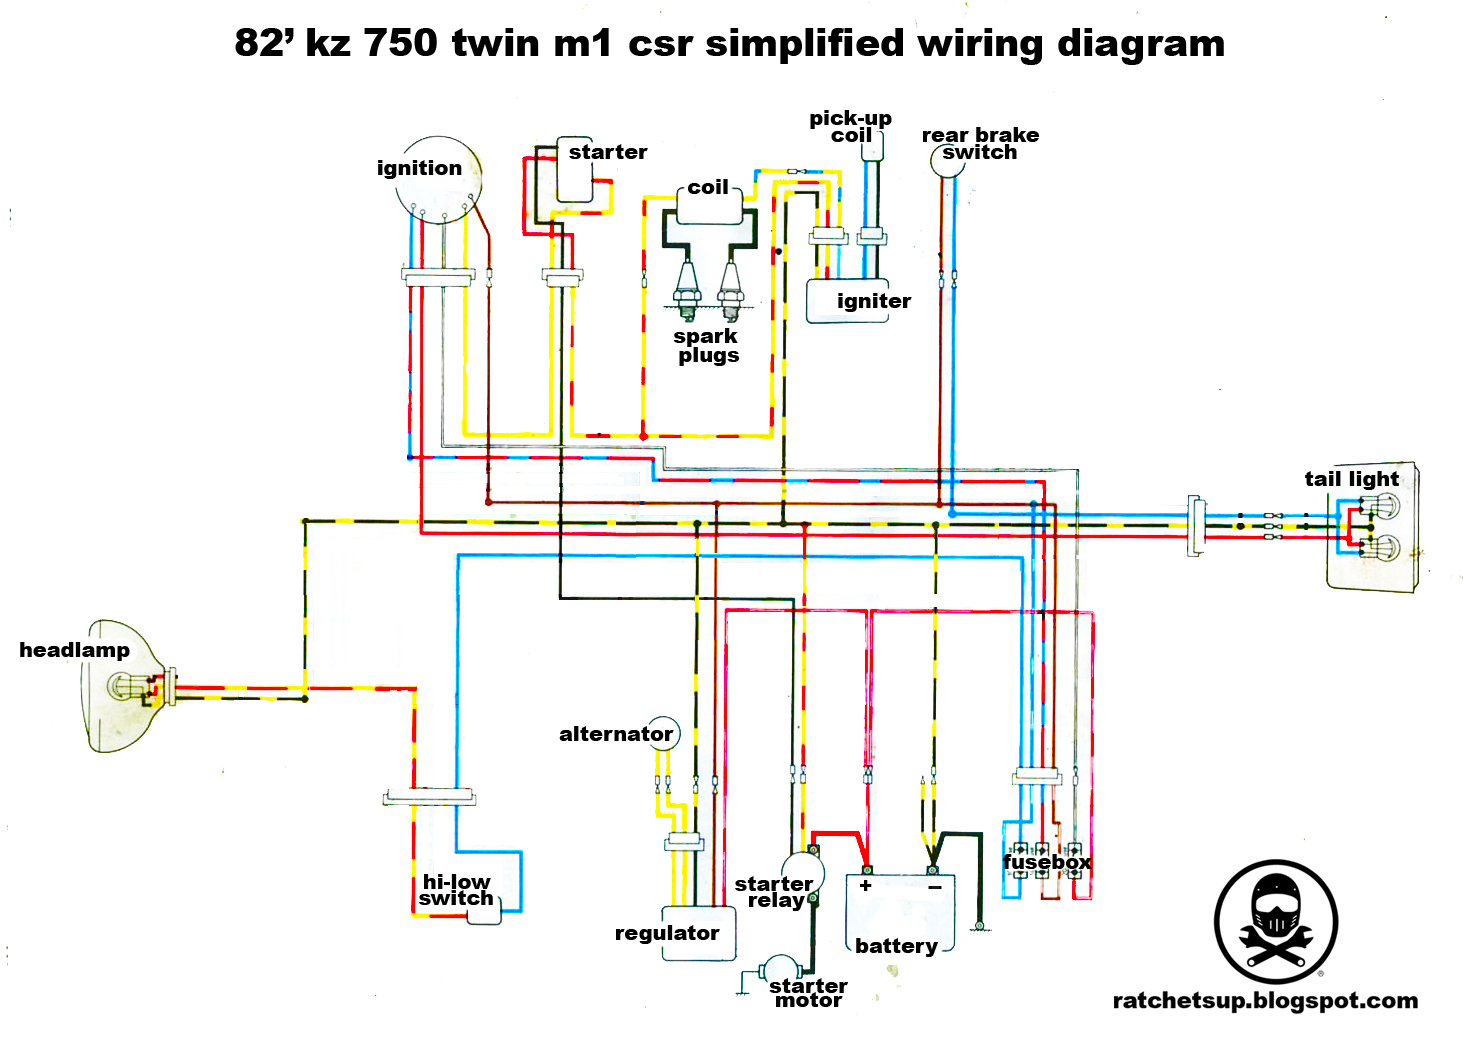 kz750+simple+diagram simplified minimal kz750 csr wiring diagram kzrider forum 82 Kawasaki LTD 750 Bobber at webbmarketing.co